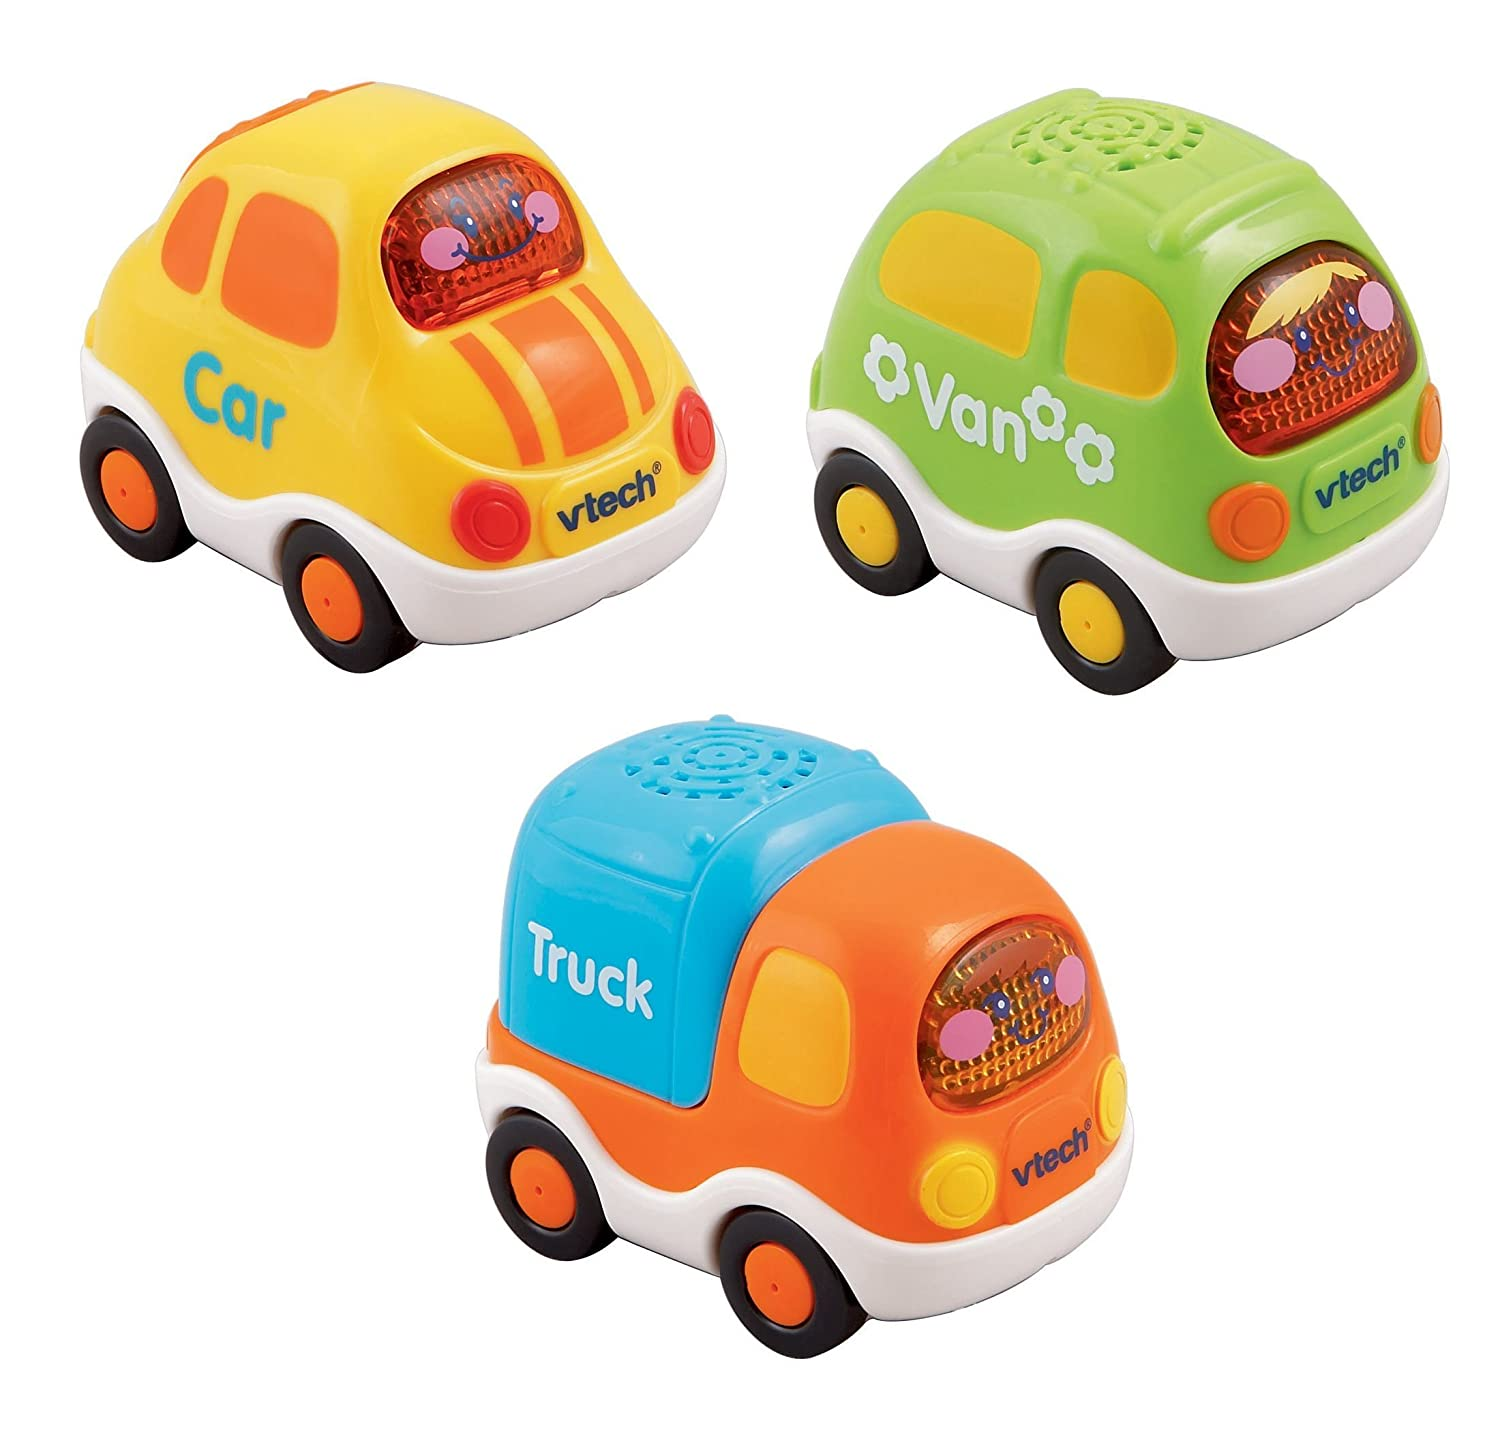 Amazon VTech Characters & Brands Toys & Games